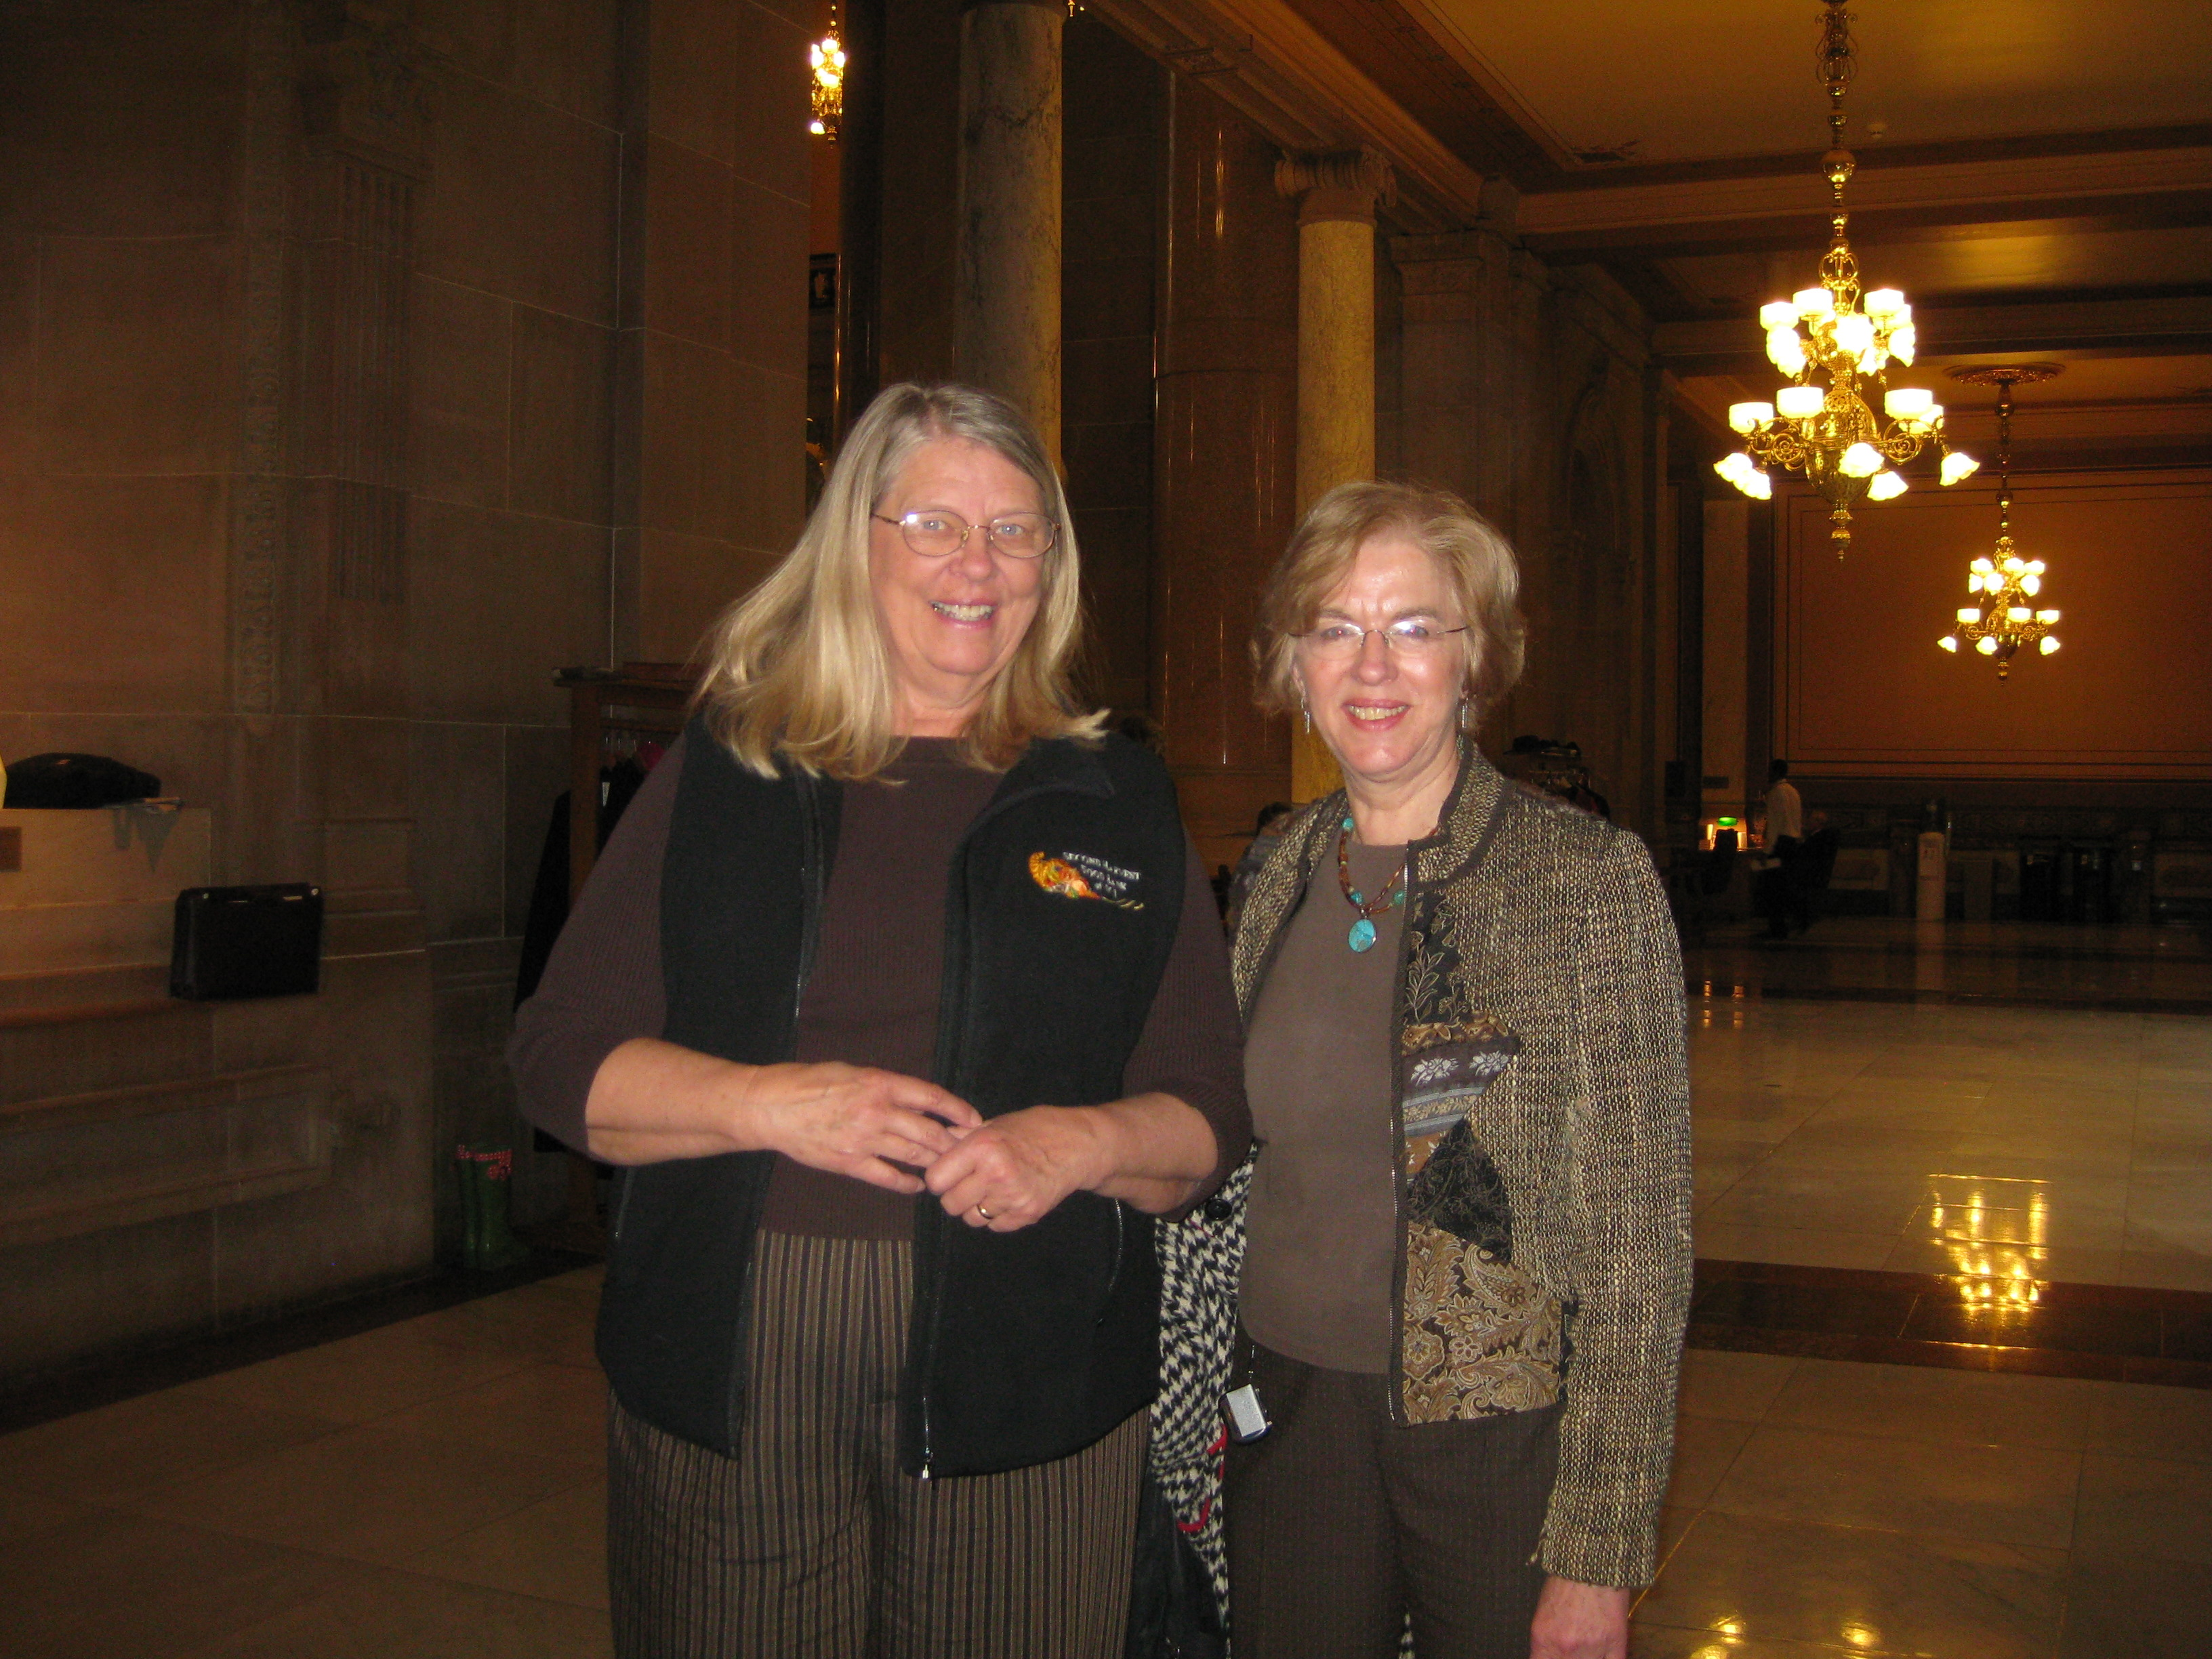 Lois Rockhill of Second Harvest Food Bank of East Central Indiana with State Sen. Sue Errington of Muncie